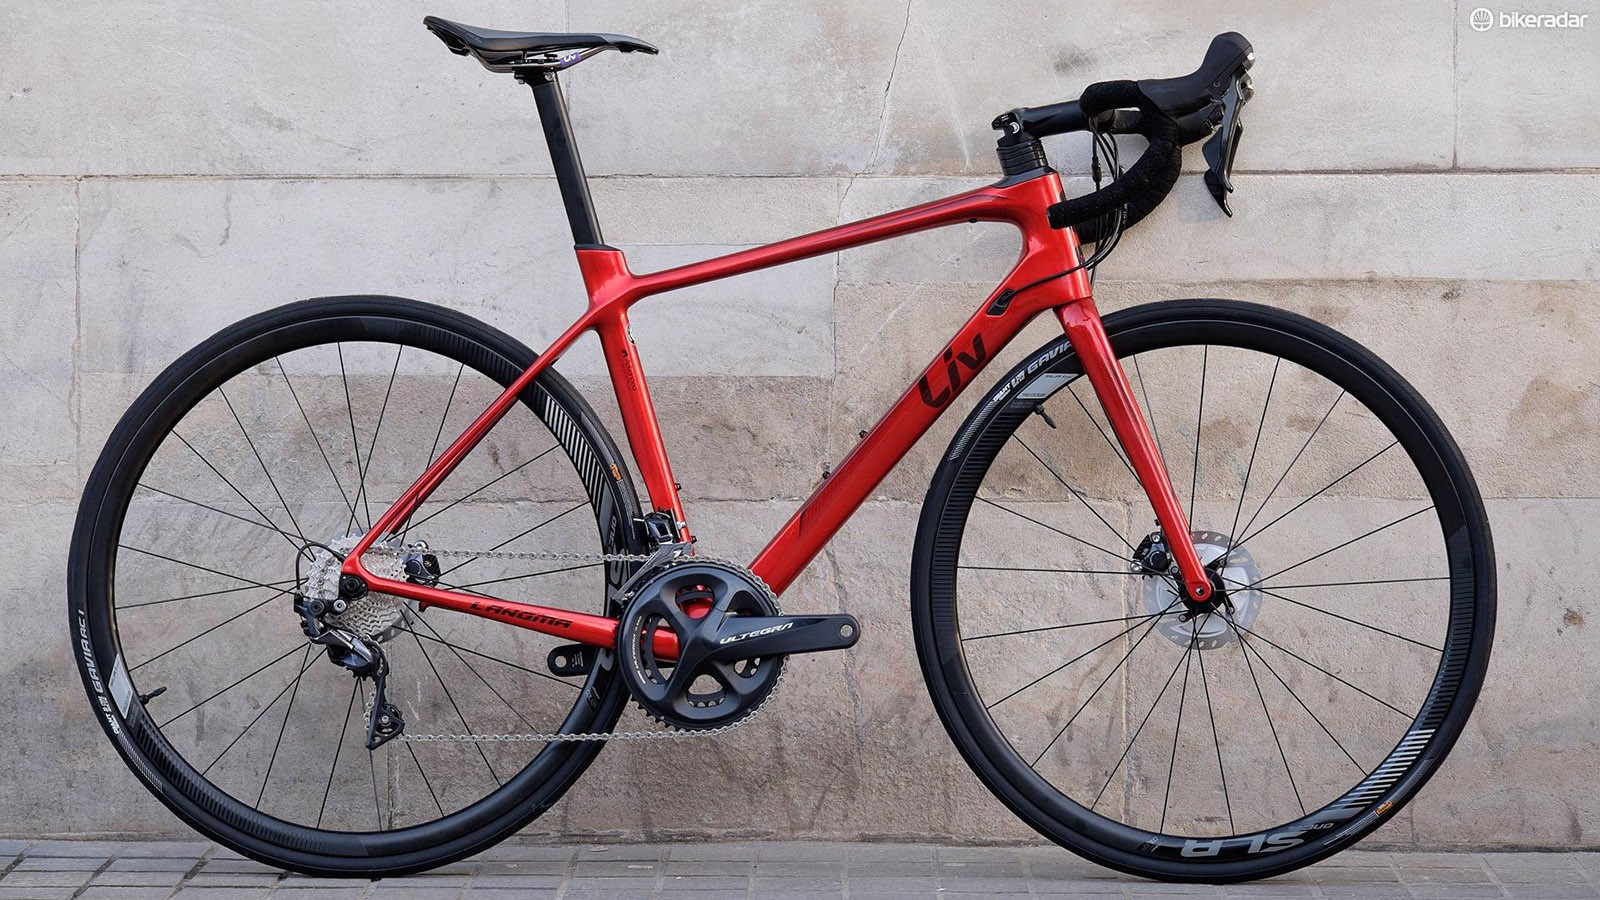 The frame incorporates aero tube shaping on the down tube and seatpost